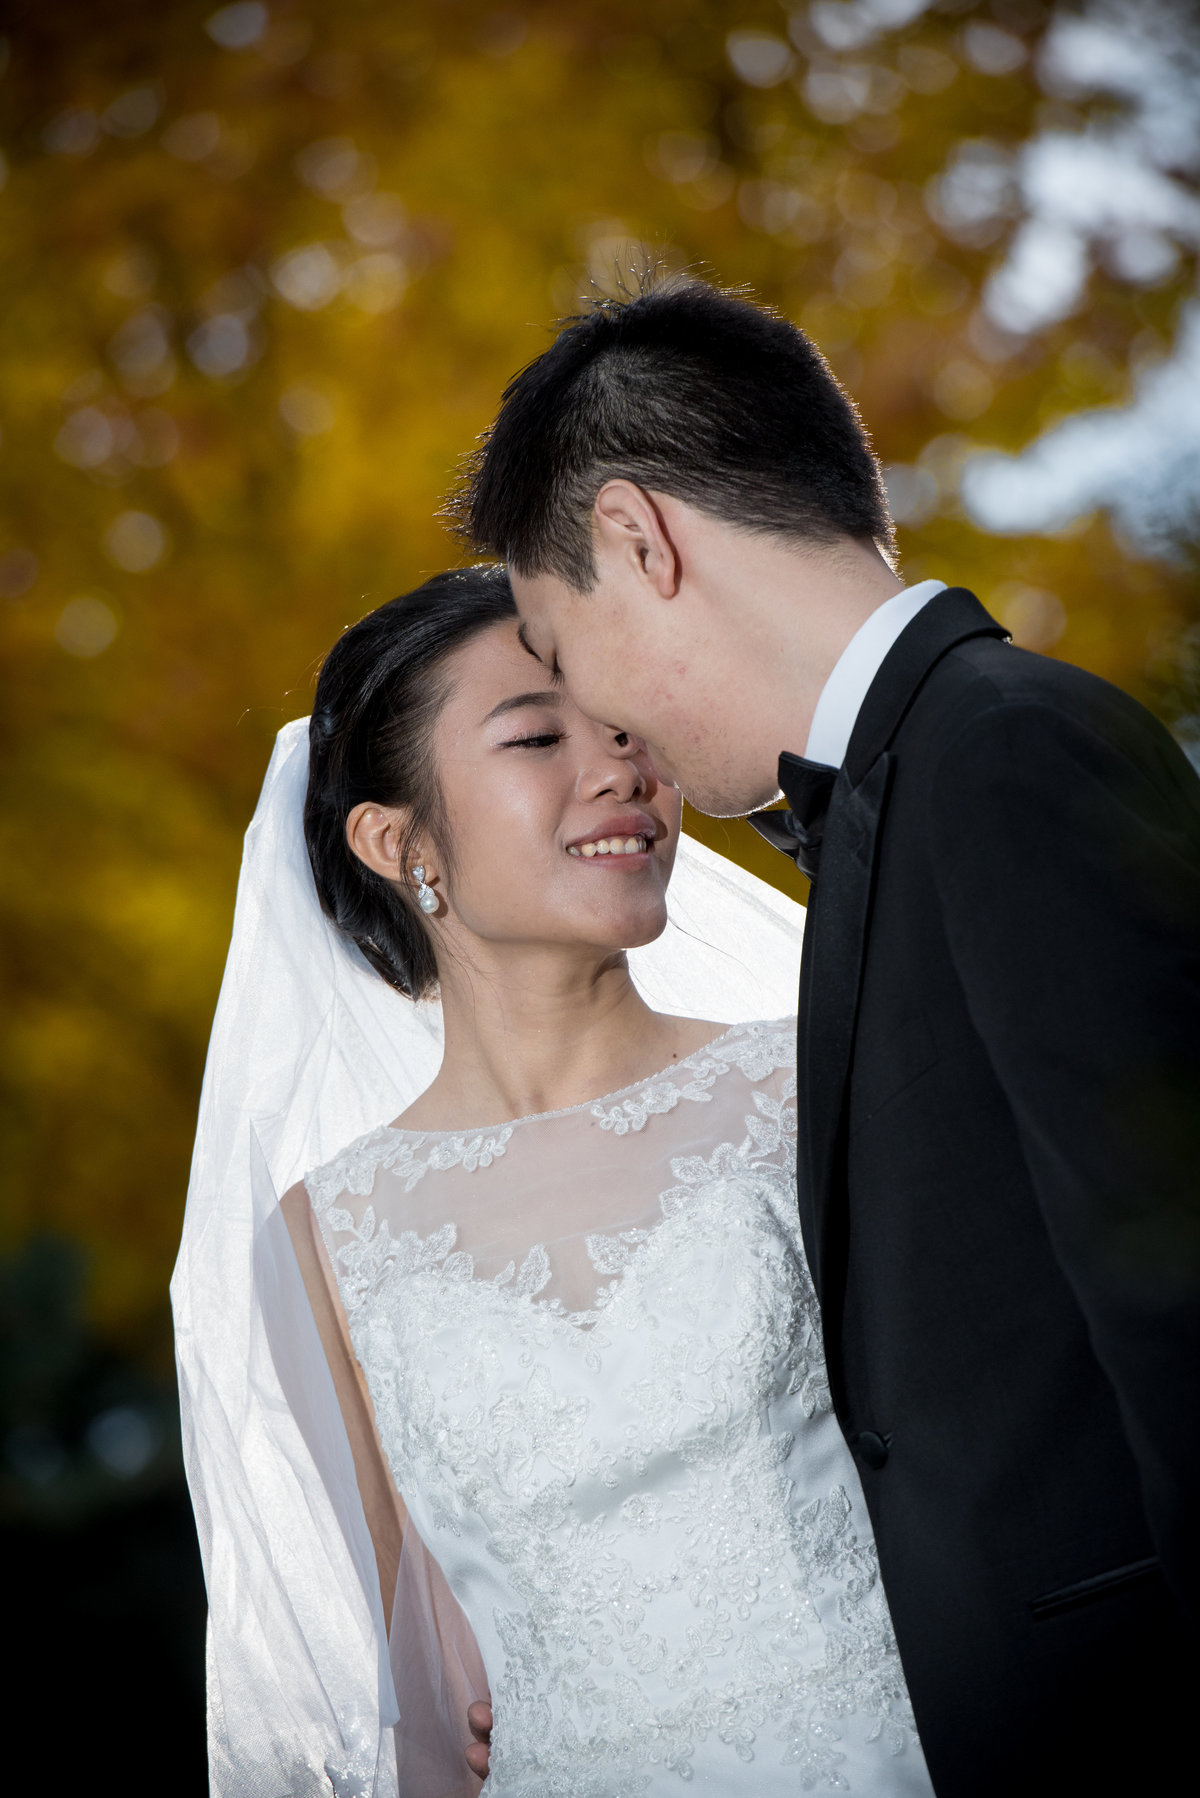 Bride and groom rest their heads together in front of a tree of yellow autumn leaves